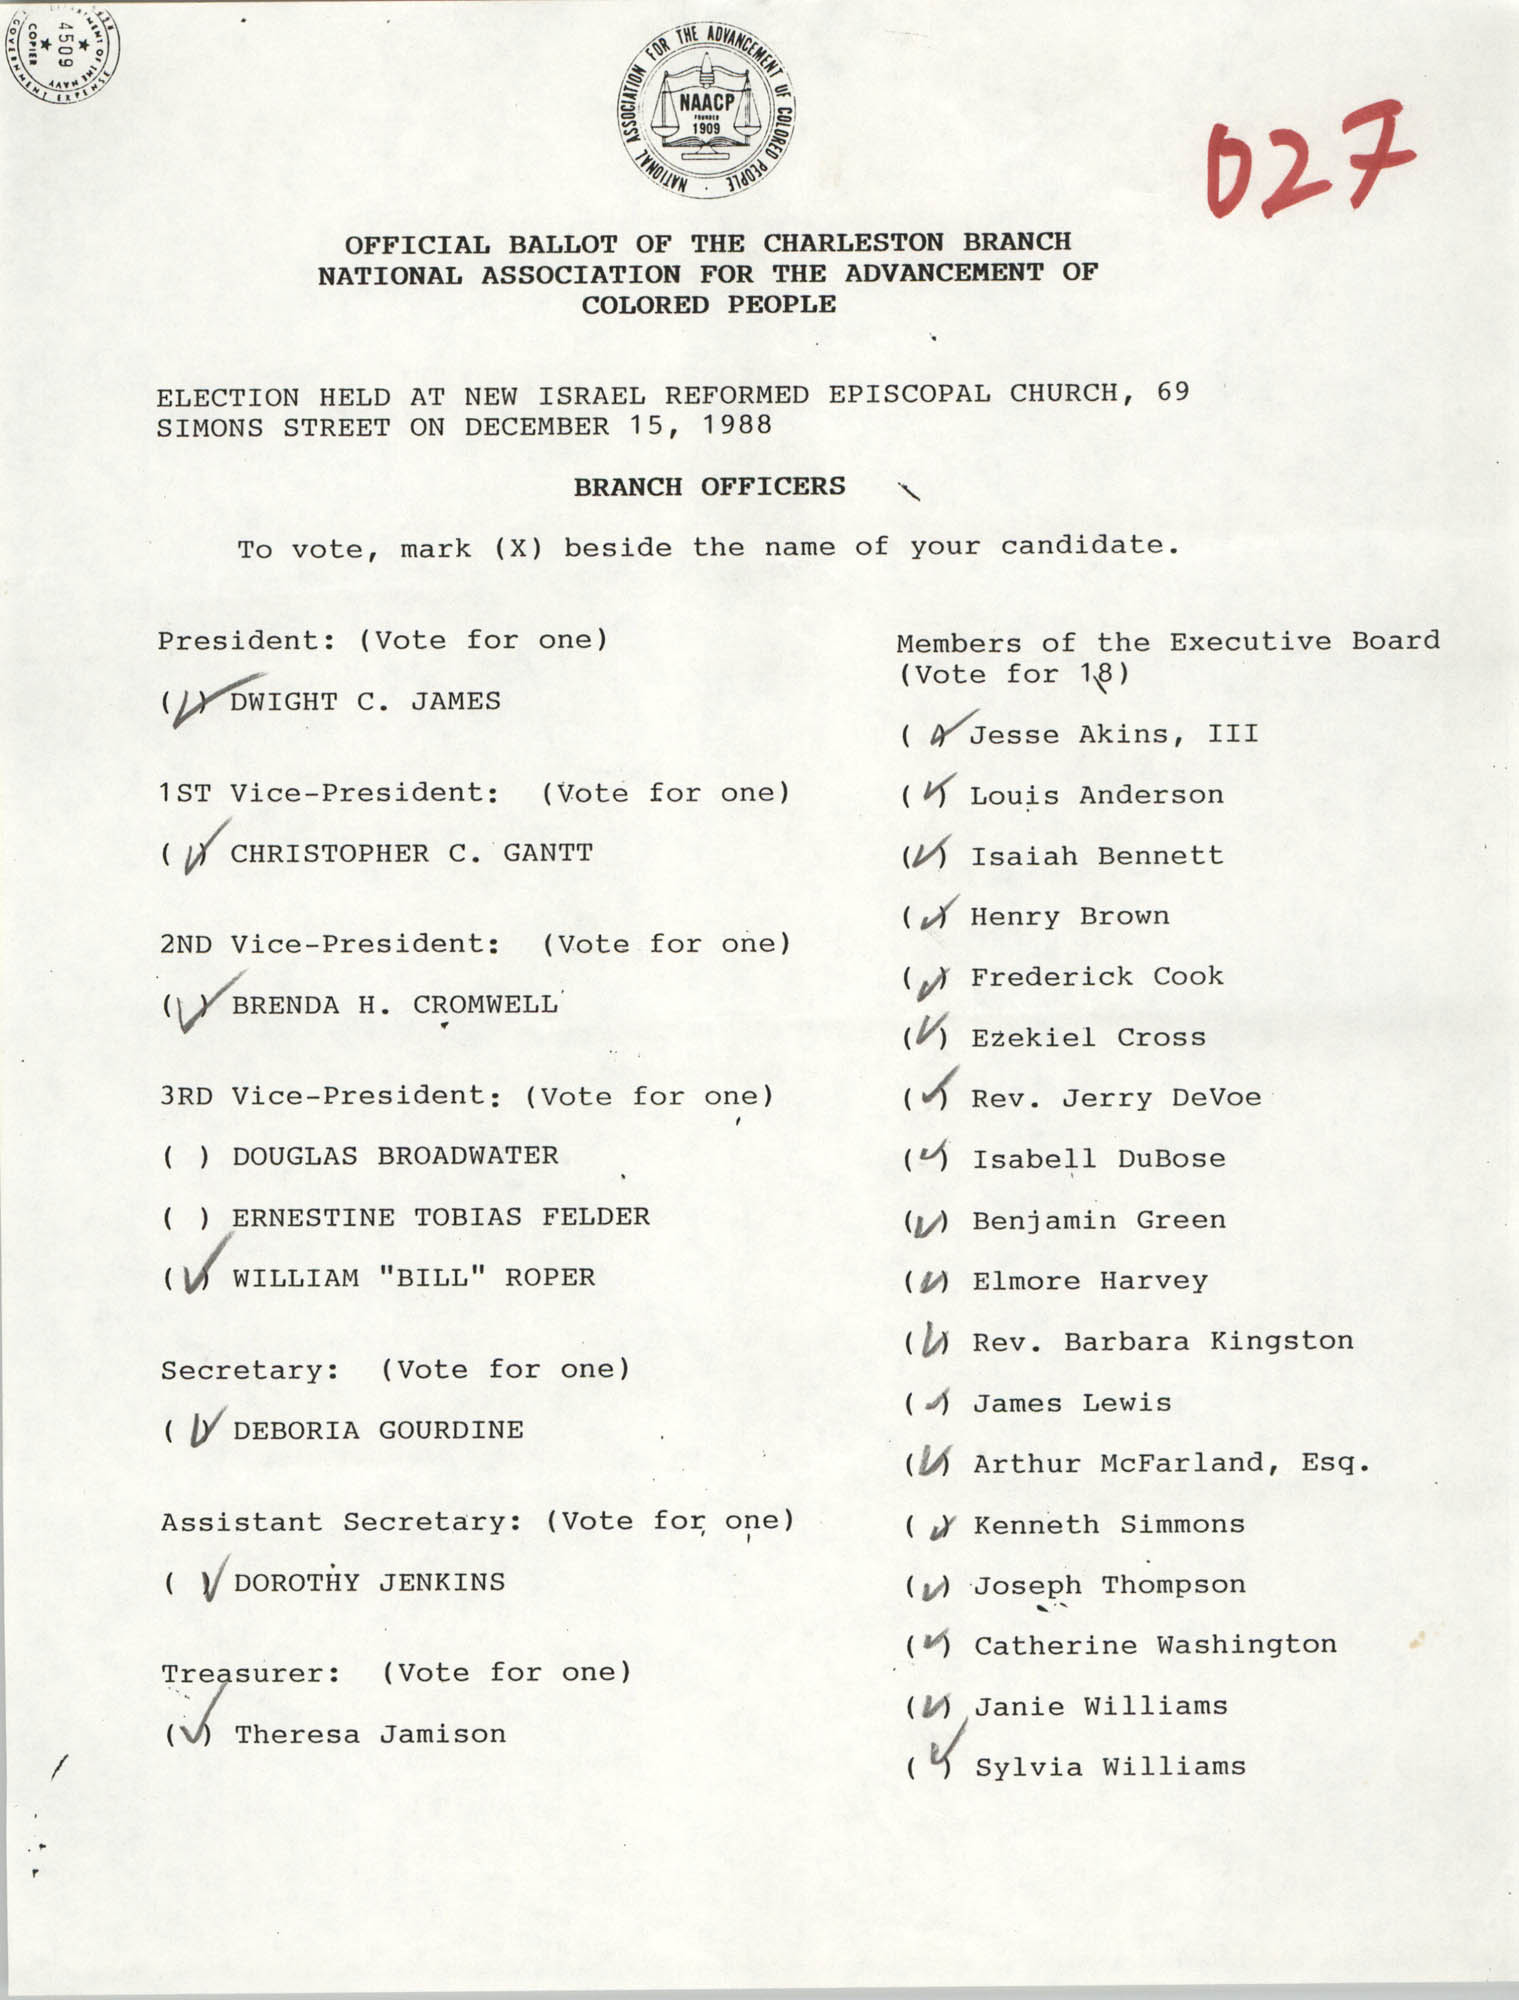 Official Ballot of the Charleston Branch of the NAACP, 027